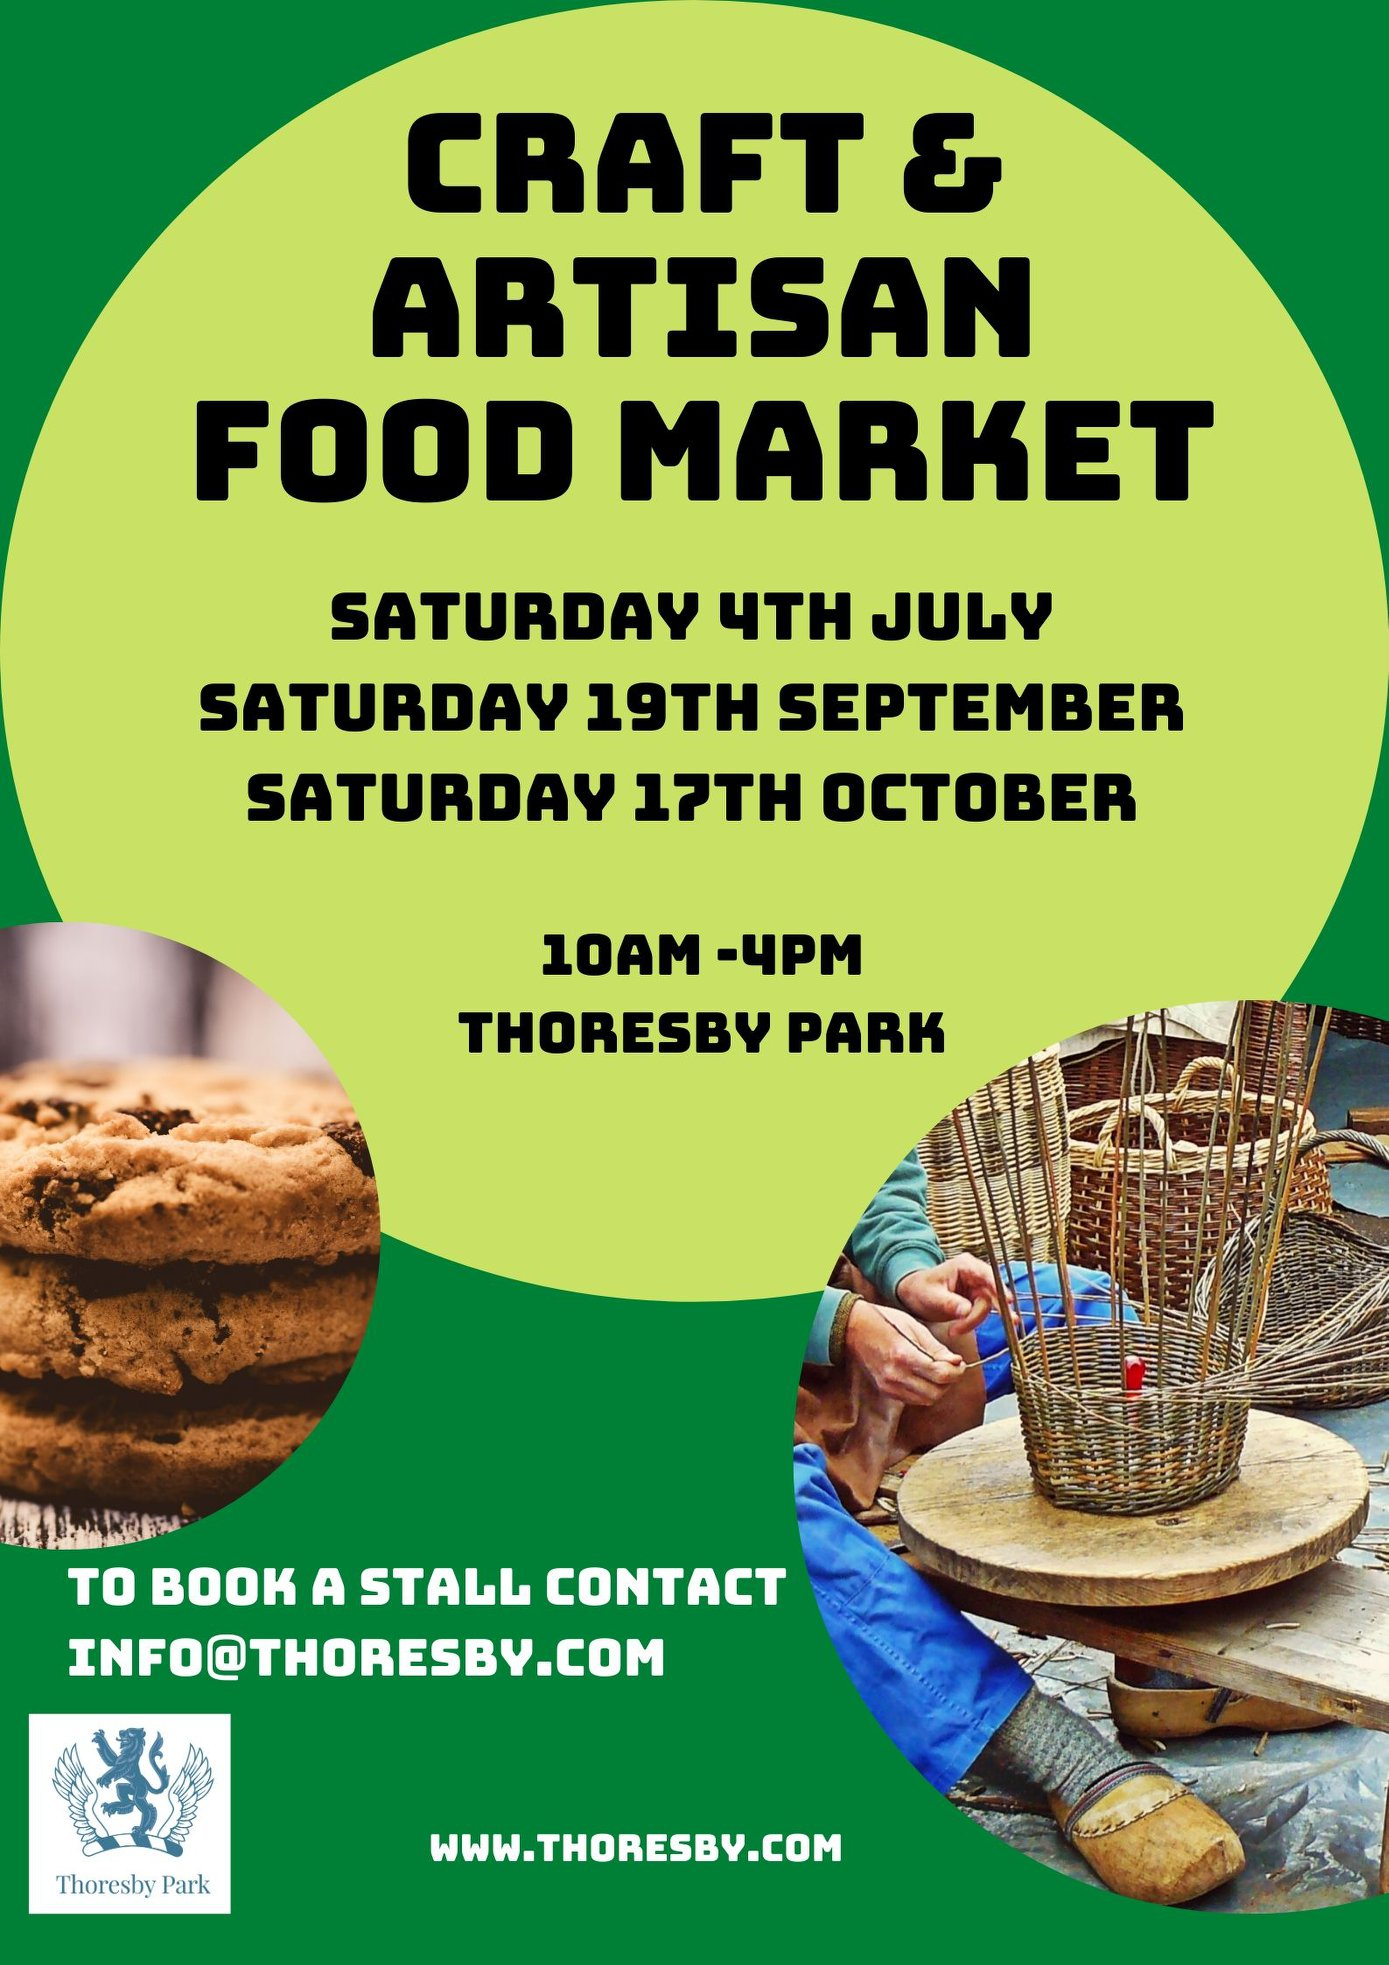 Craft & Artisan Food Market poster at Thoresby Park